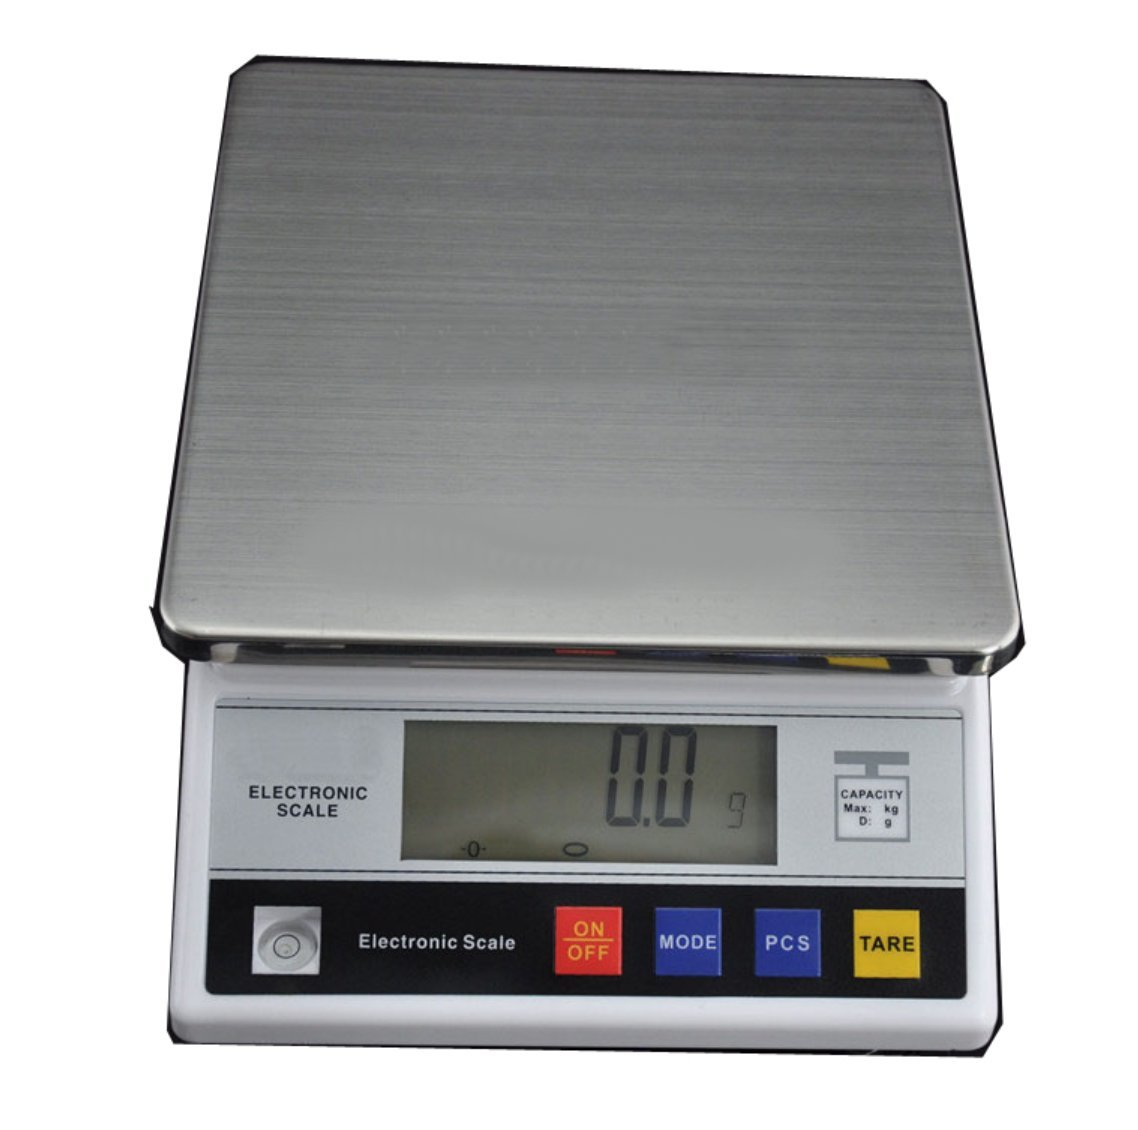 Precision Digital Scale (Certified to NIST Traceable Standard) 3kg x 0.1g Electronic Table Top Scale Balance with Counting Function, Laboratory Scale